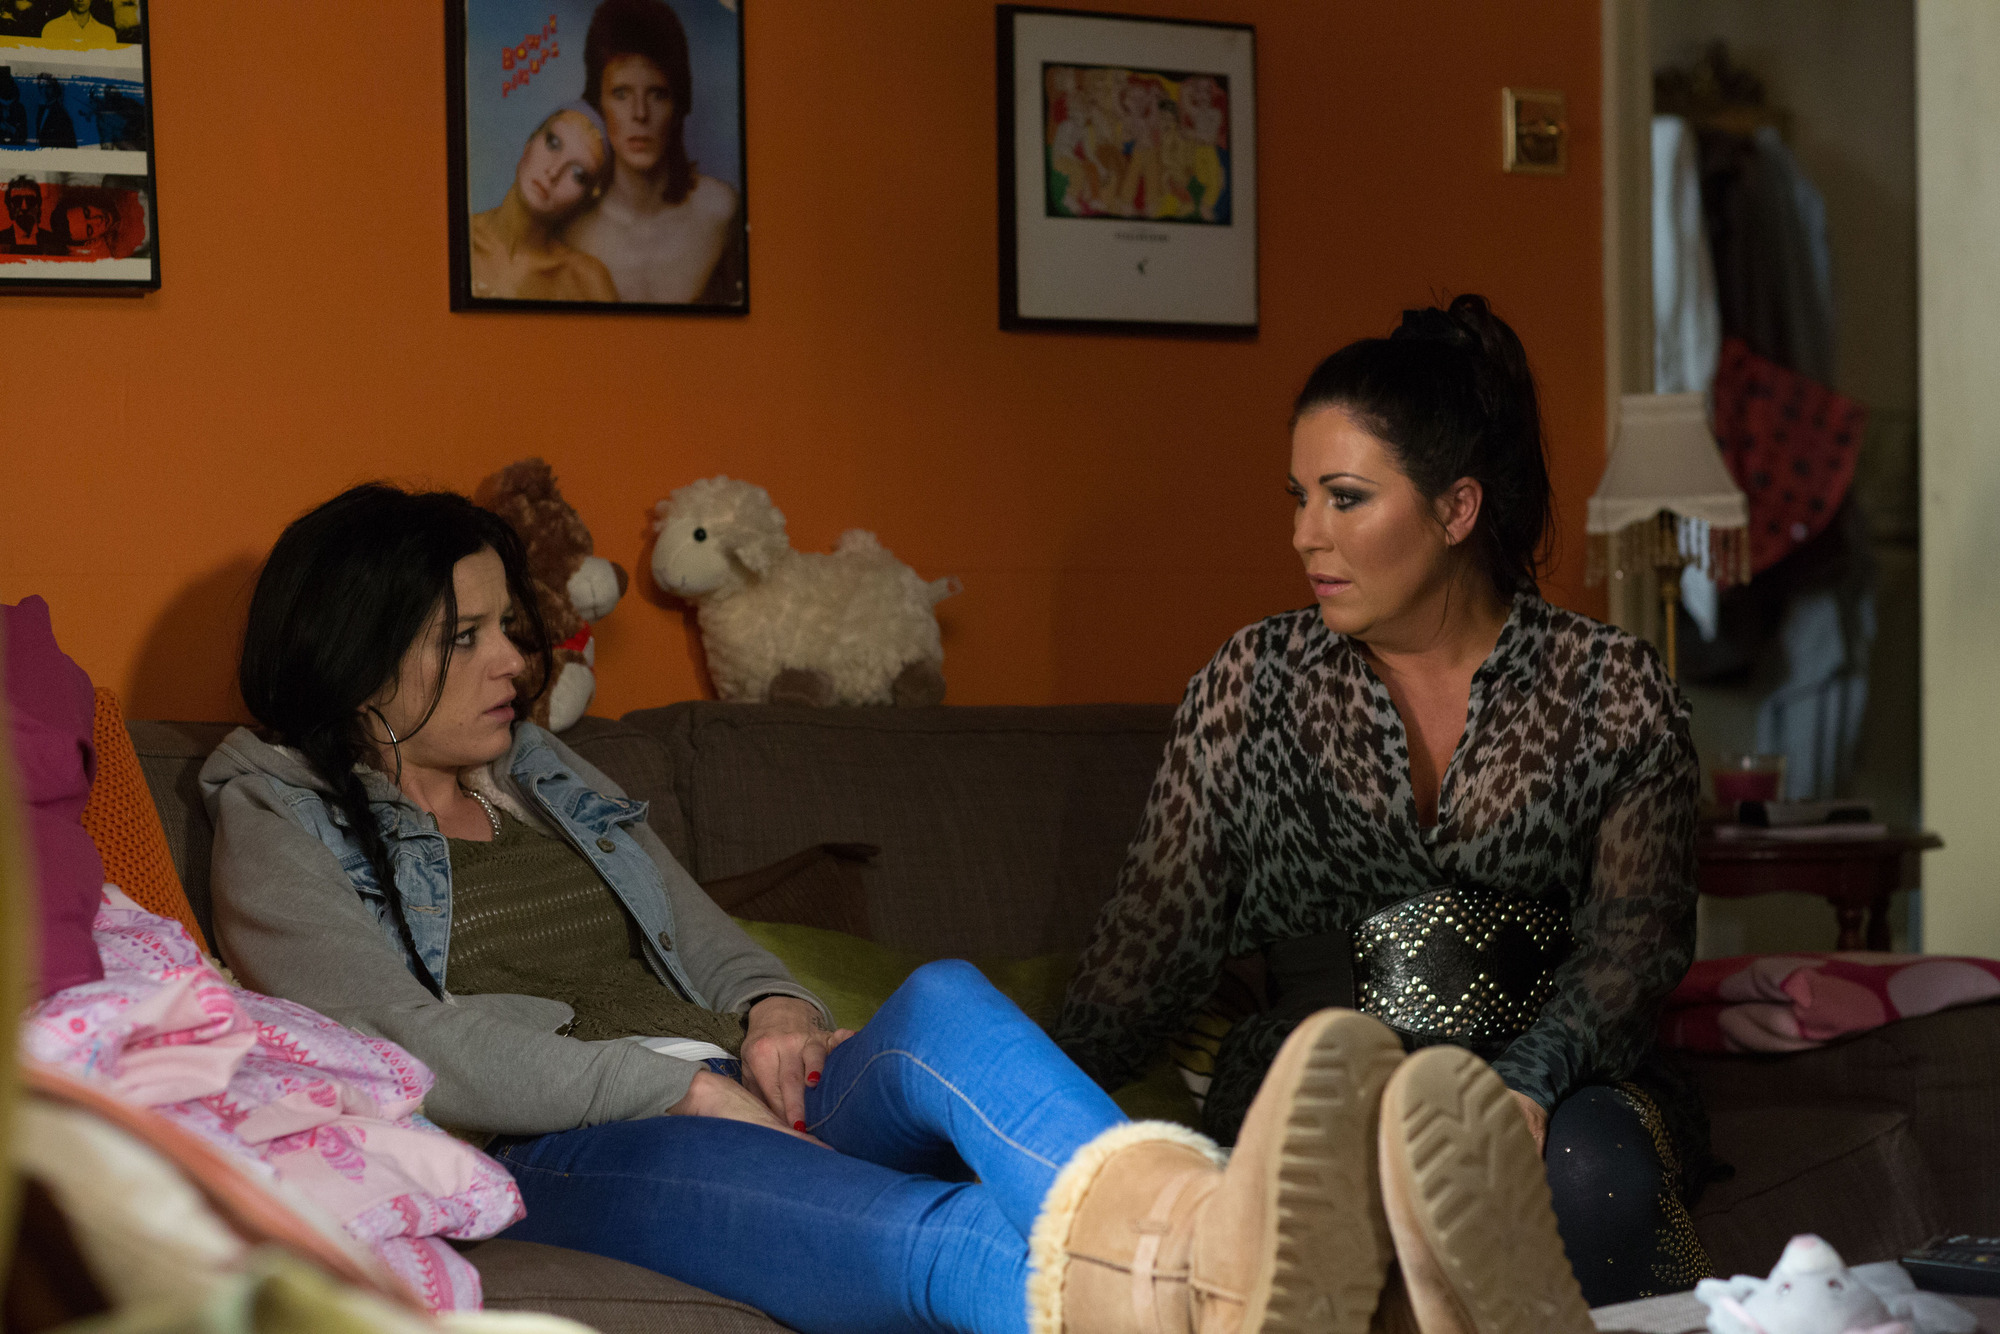 EastEnders spoilers: Kat Moon and Hayley Slater bond but will Kat find out about Hayley's pregnancy?